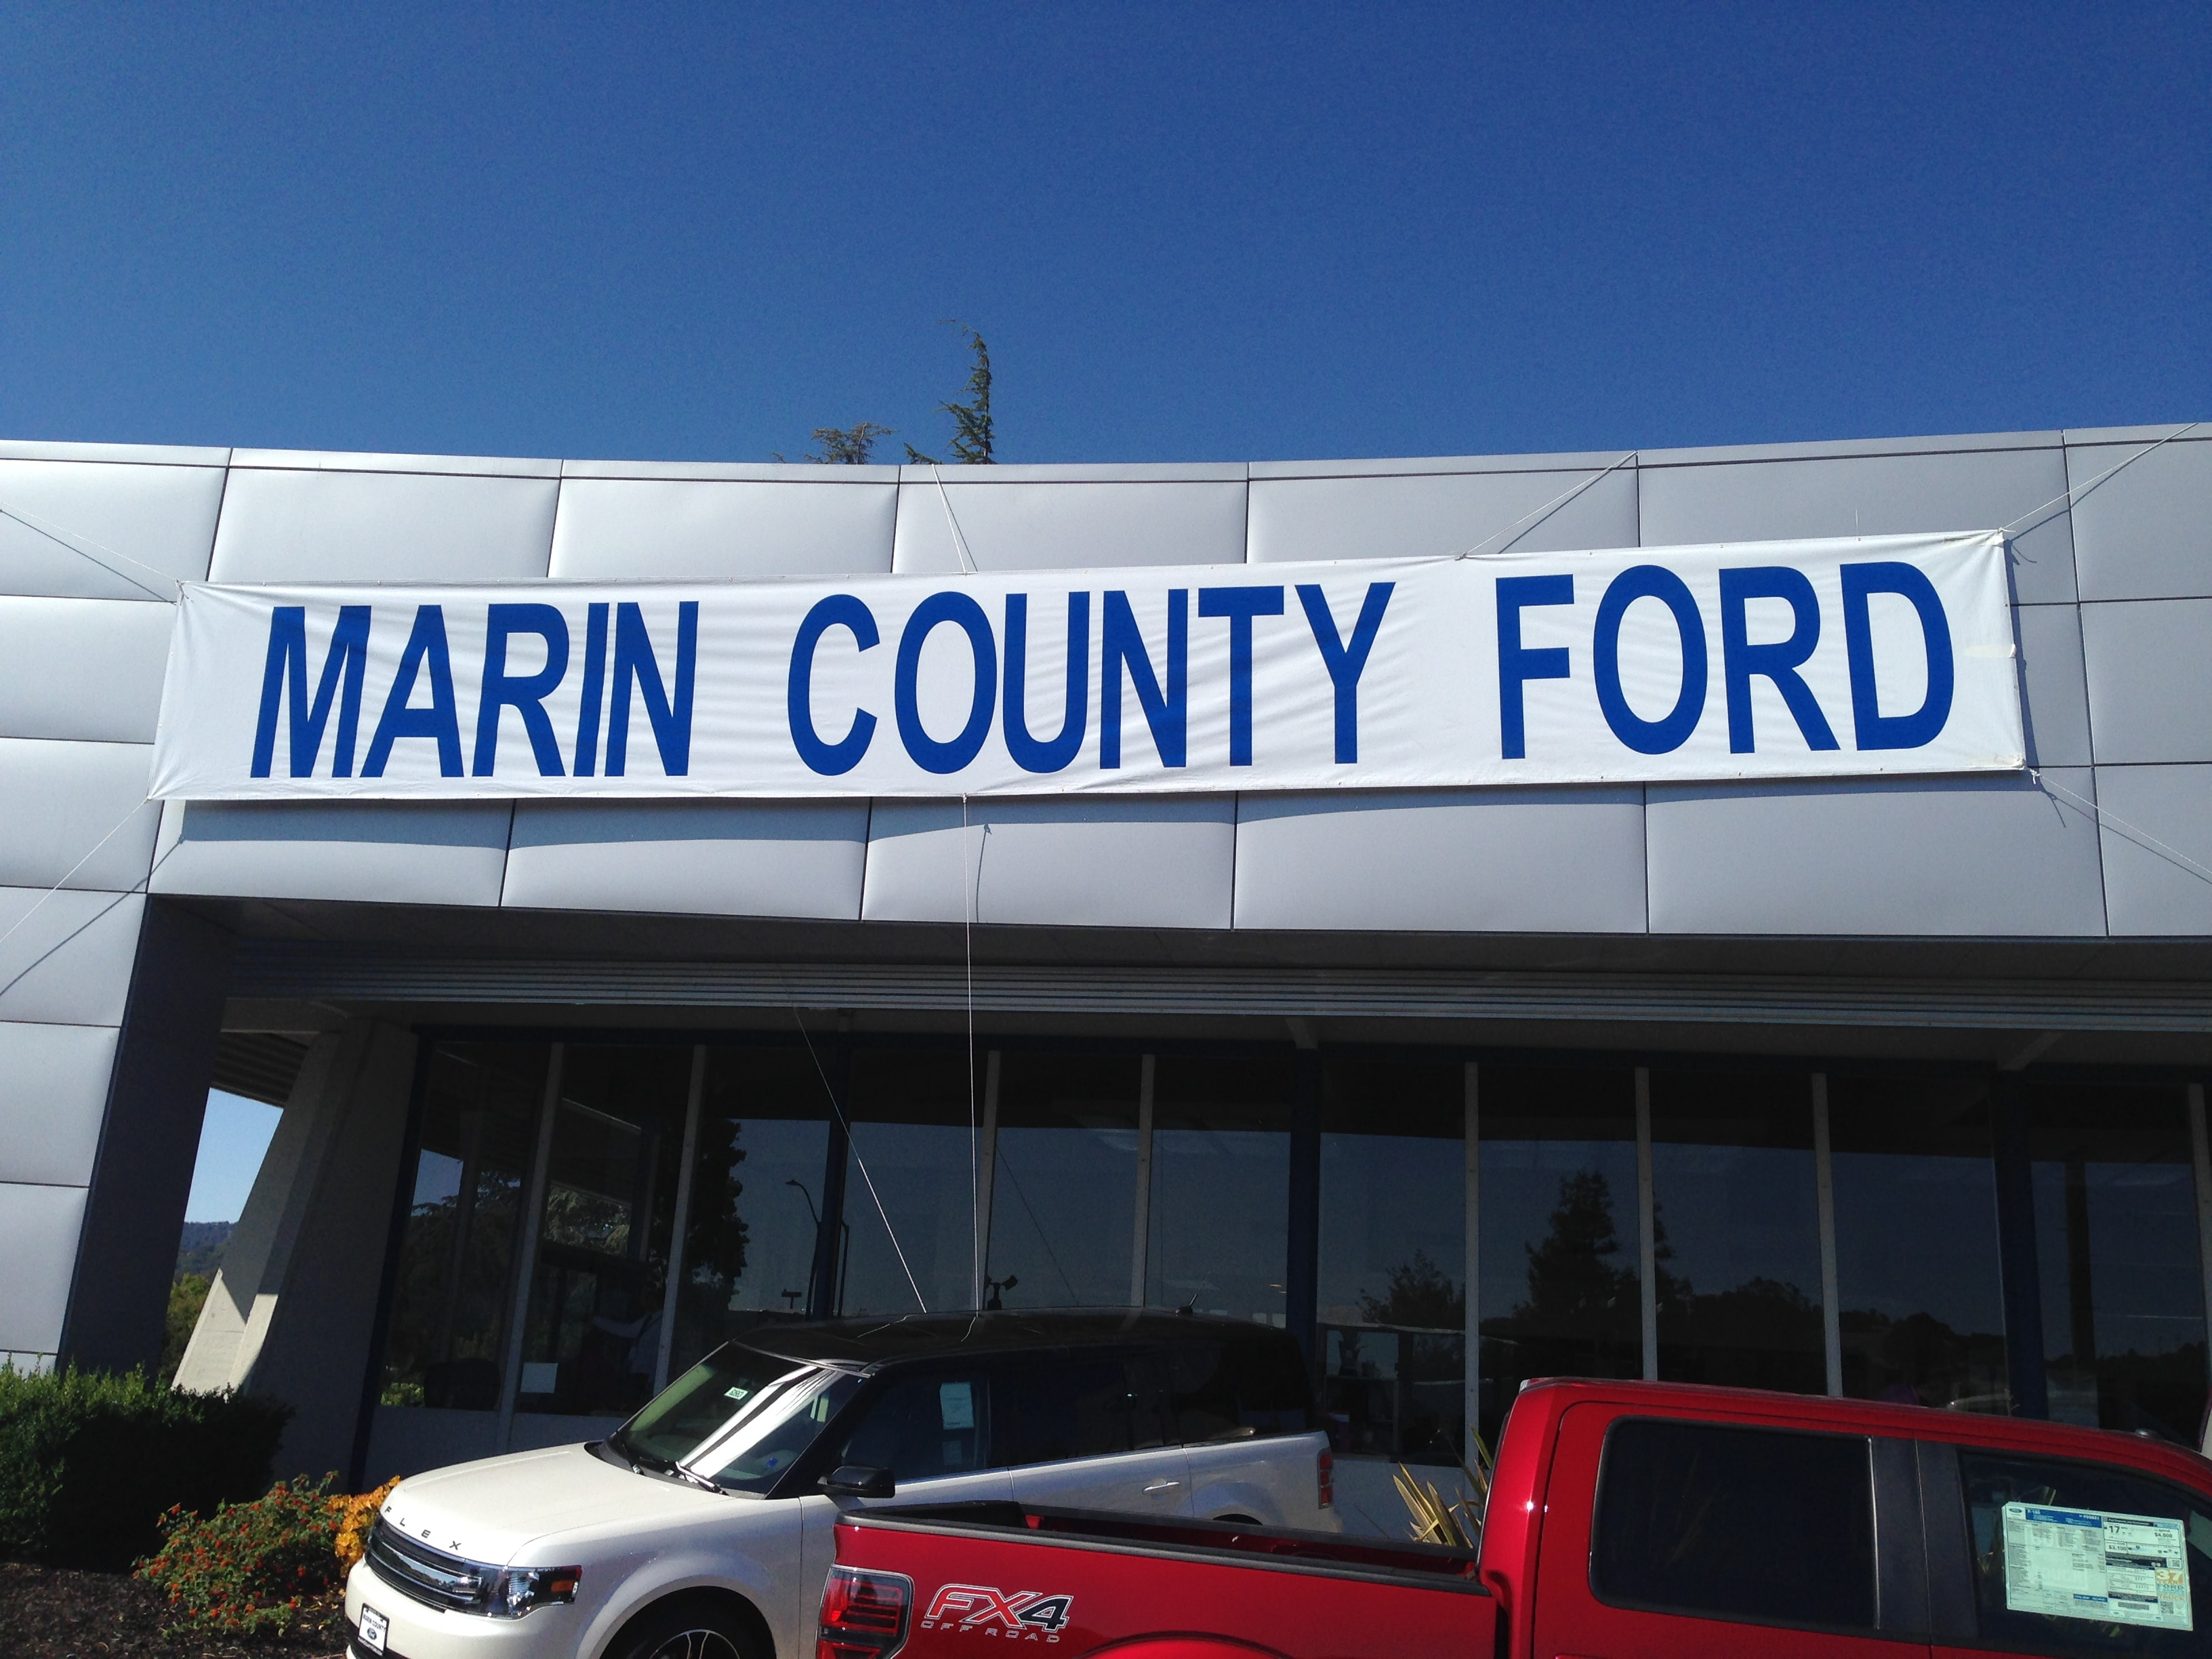 marin ford - 28 images - marin county ford novato ca read consumer ...